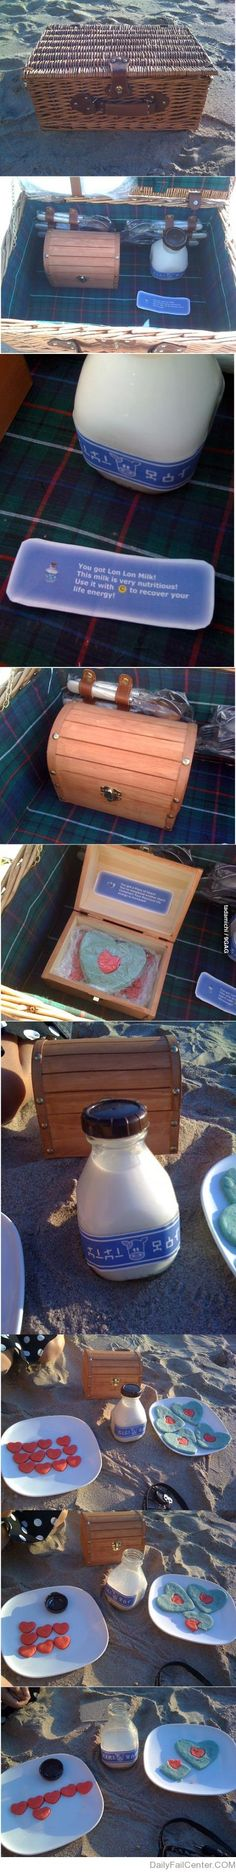 Ocarina of Time themed picnic. OMG!! I would die if someone did this for me! Thats so cute!